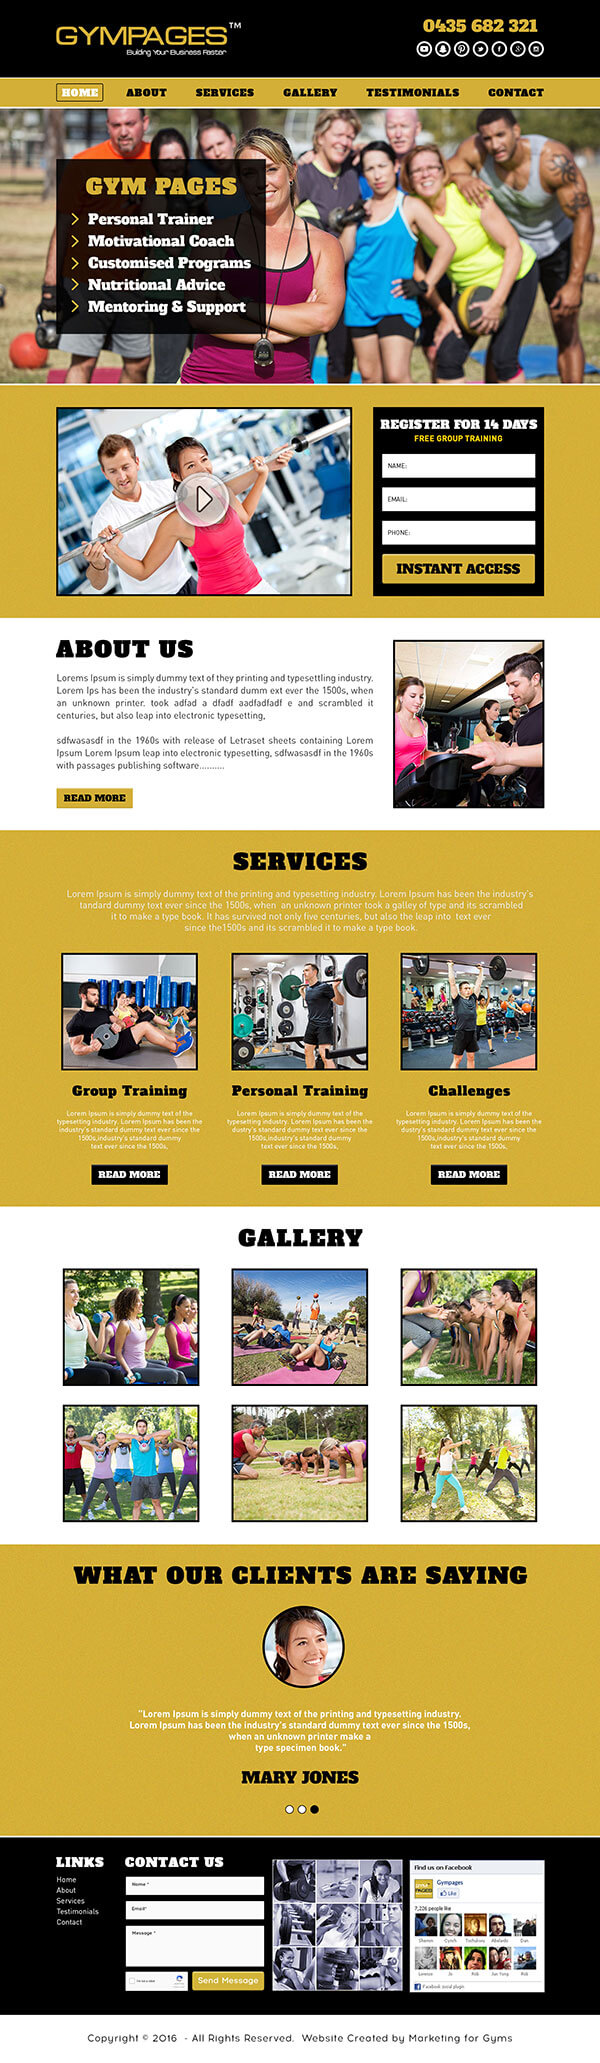 Fitness Gym Website Templates Customized Gym Web Pages